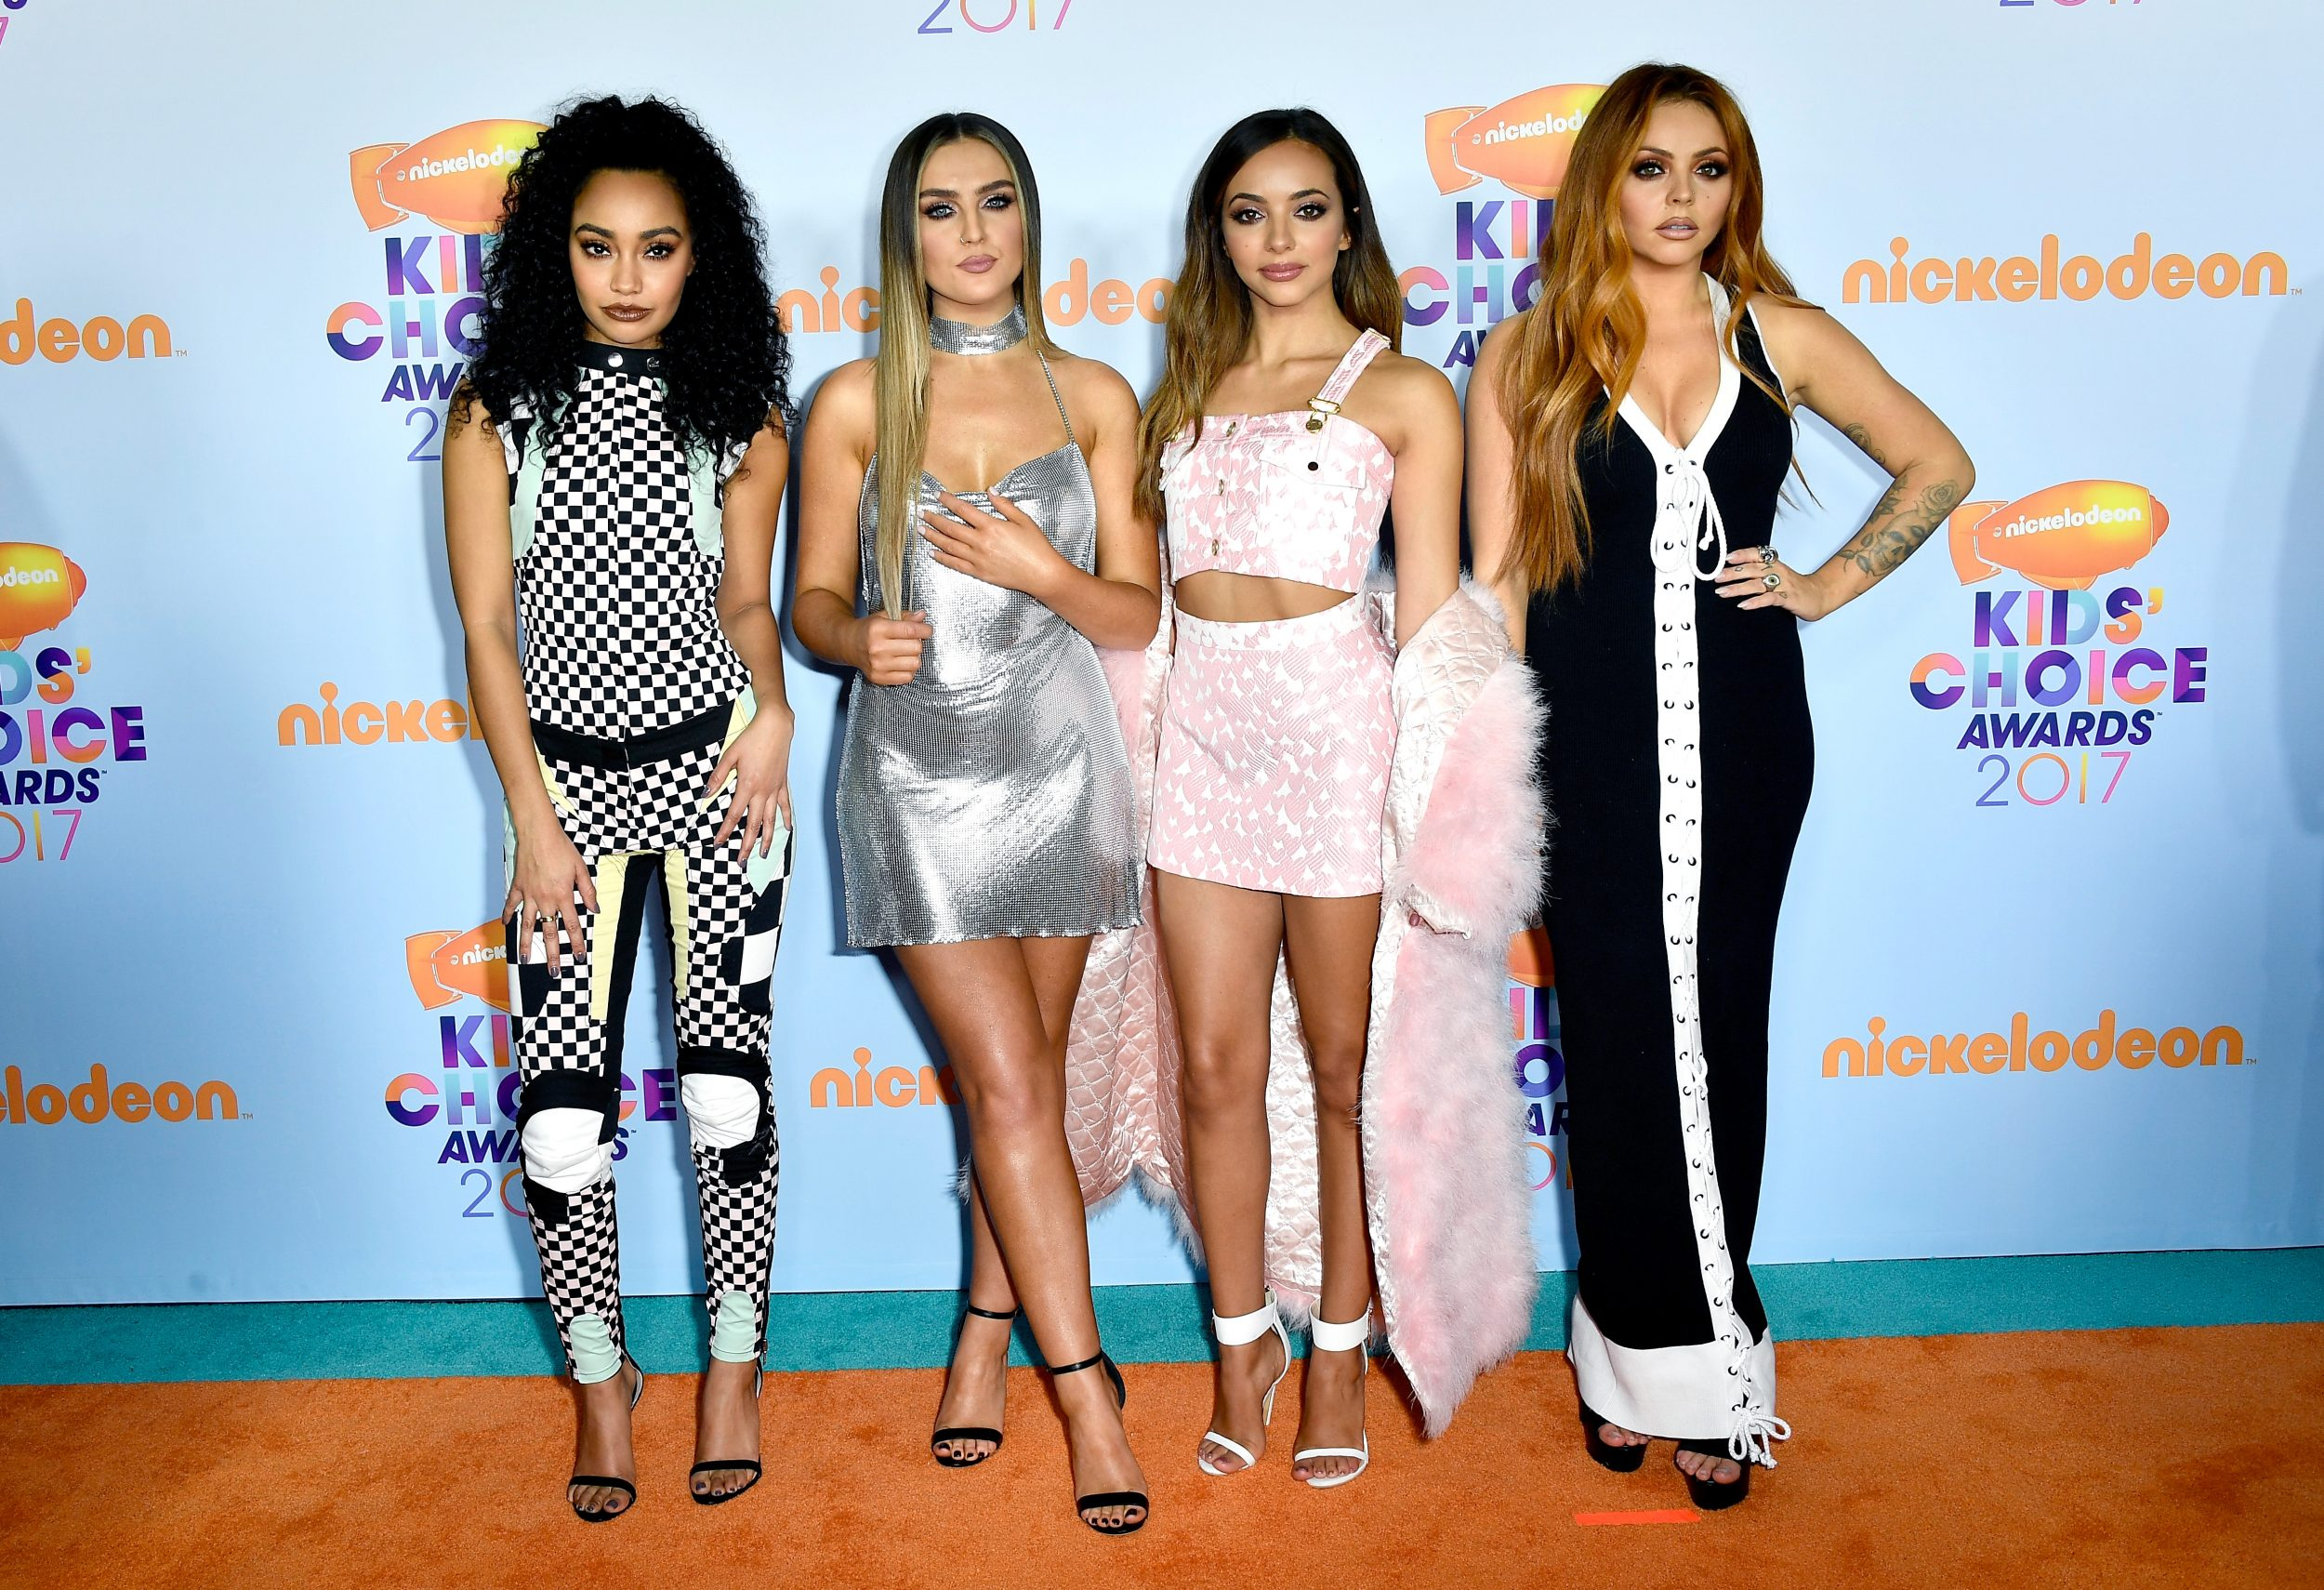 LOS ANGELES, CA - MARCH 11:  Singing group Little Mix at Nickelodeon's 2017 Kids' Choice Awards at USC Galen Center on March 11, 2017 in Los Angeles, California.  (Photo by Frazer Harrison/Getty Images - Issued to Media by Nickelodeon)